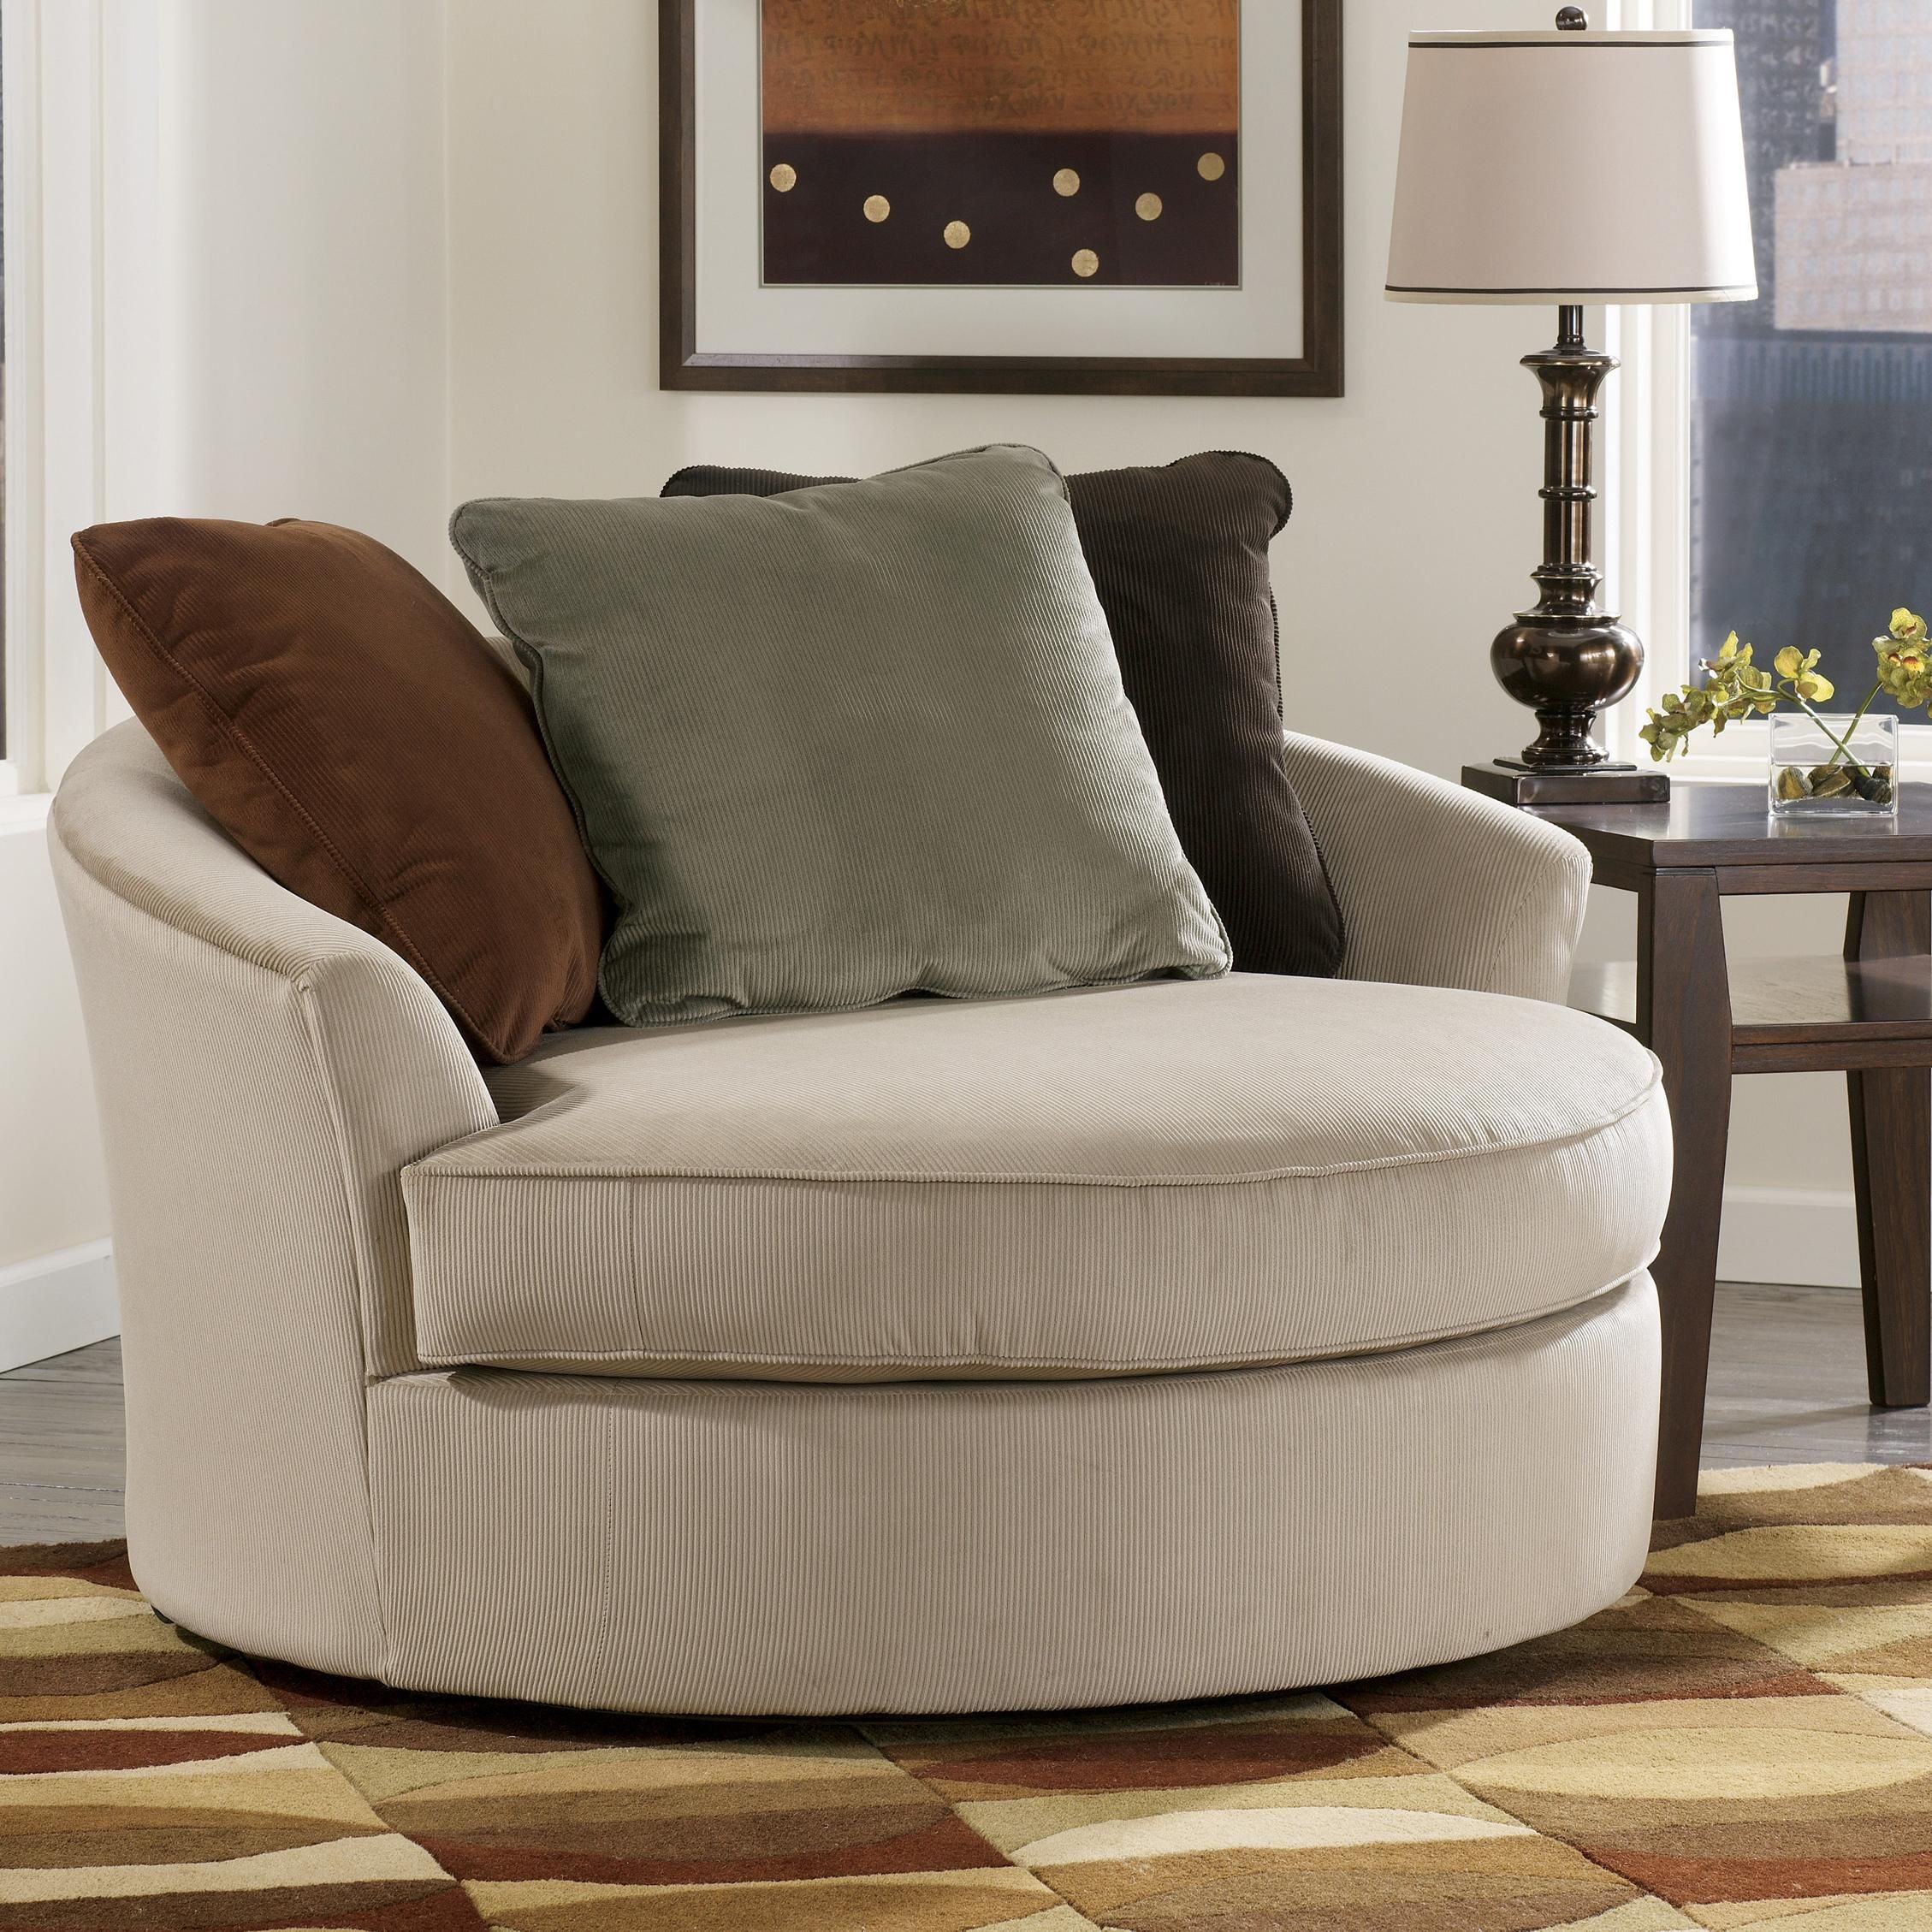 Comfortable chairs for living room - Laken Oversized Round Swivel Chair By Signature Design By Ashley Furniture Oversized Chairswivel Chairliving Room